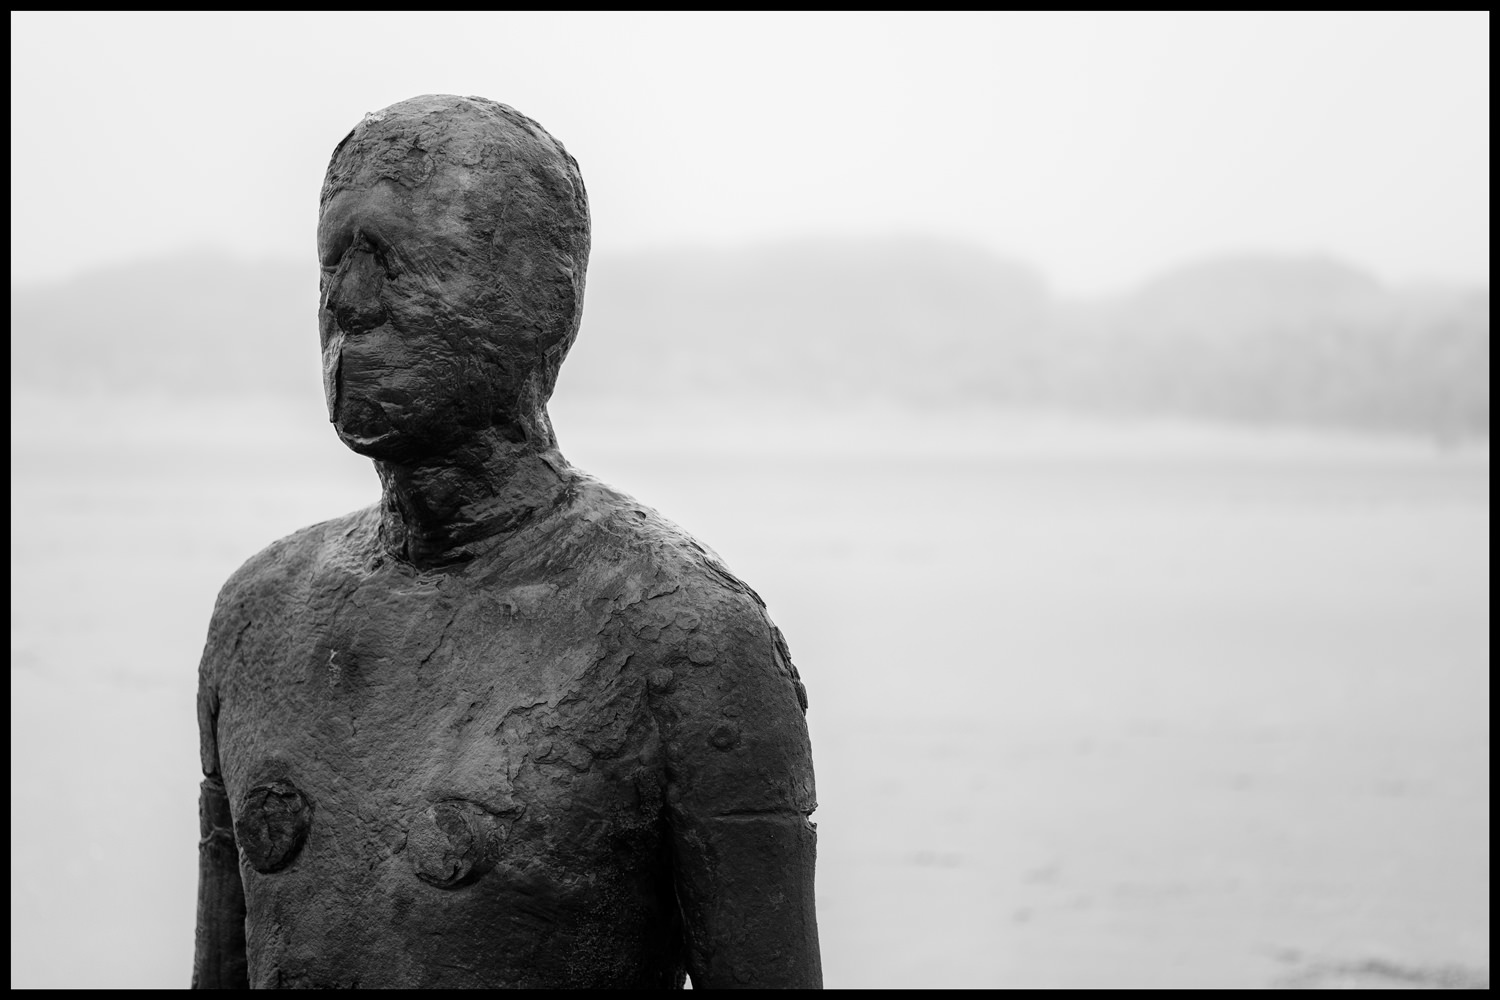 The top half of one of the iron men, from the front, with the beach in the background, fading into the fog